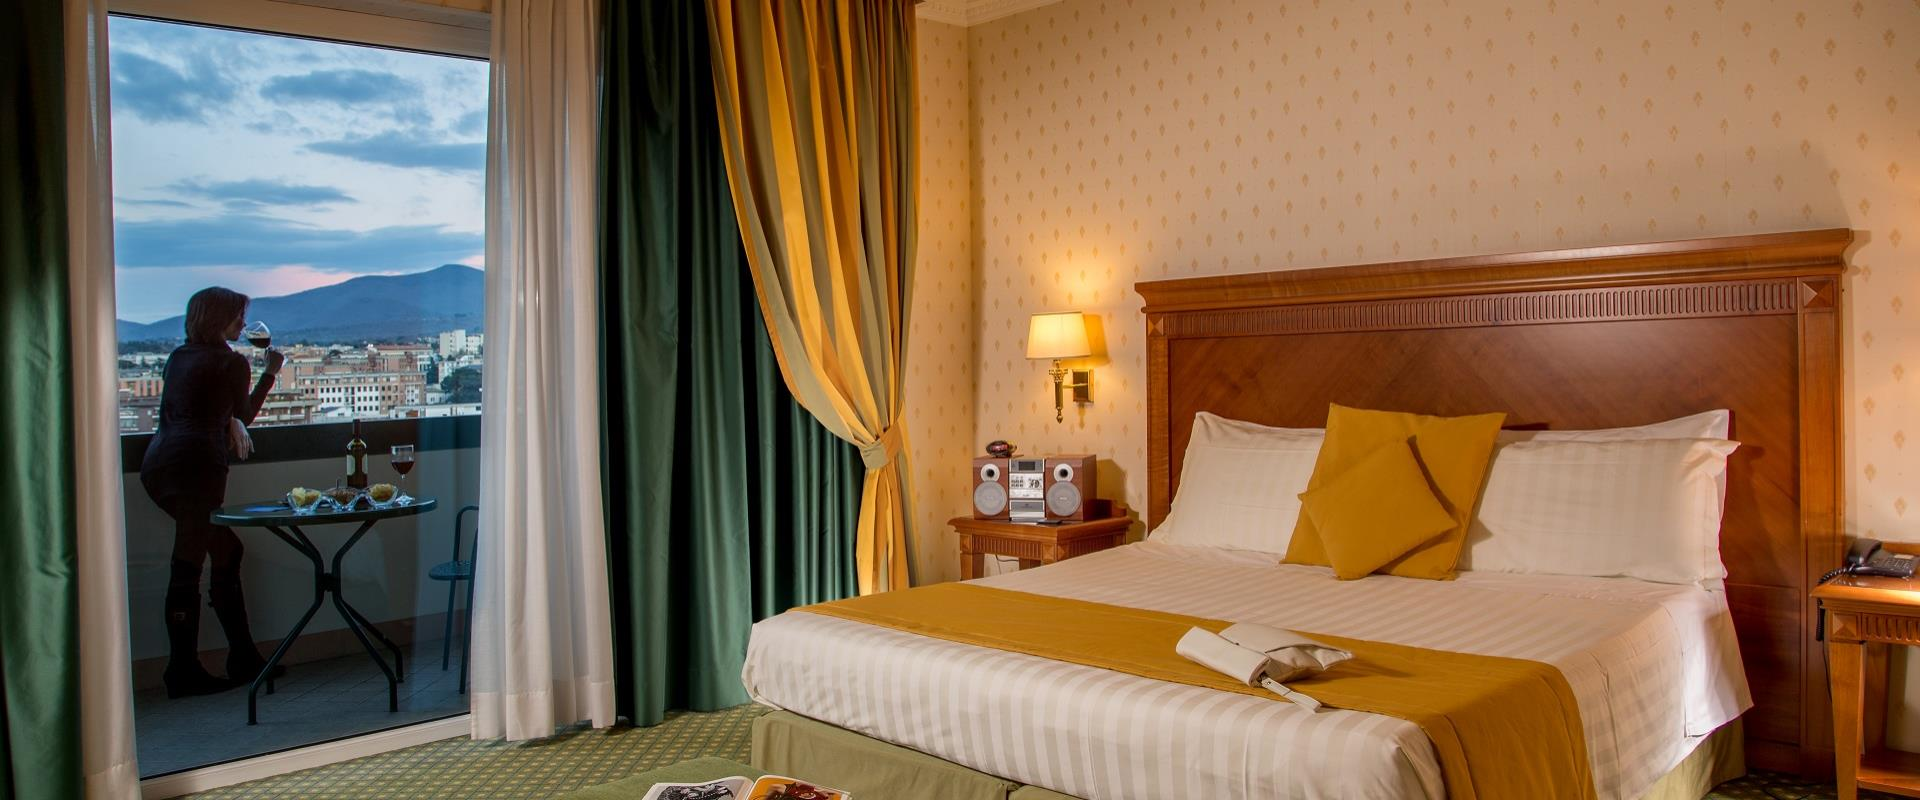 Discover the comfort of our deluxe rooms and book the BW Hotel Viterbo